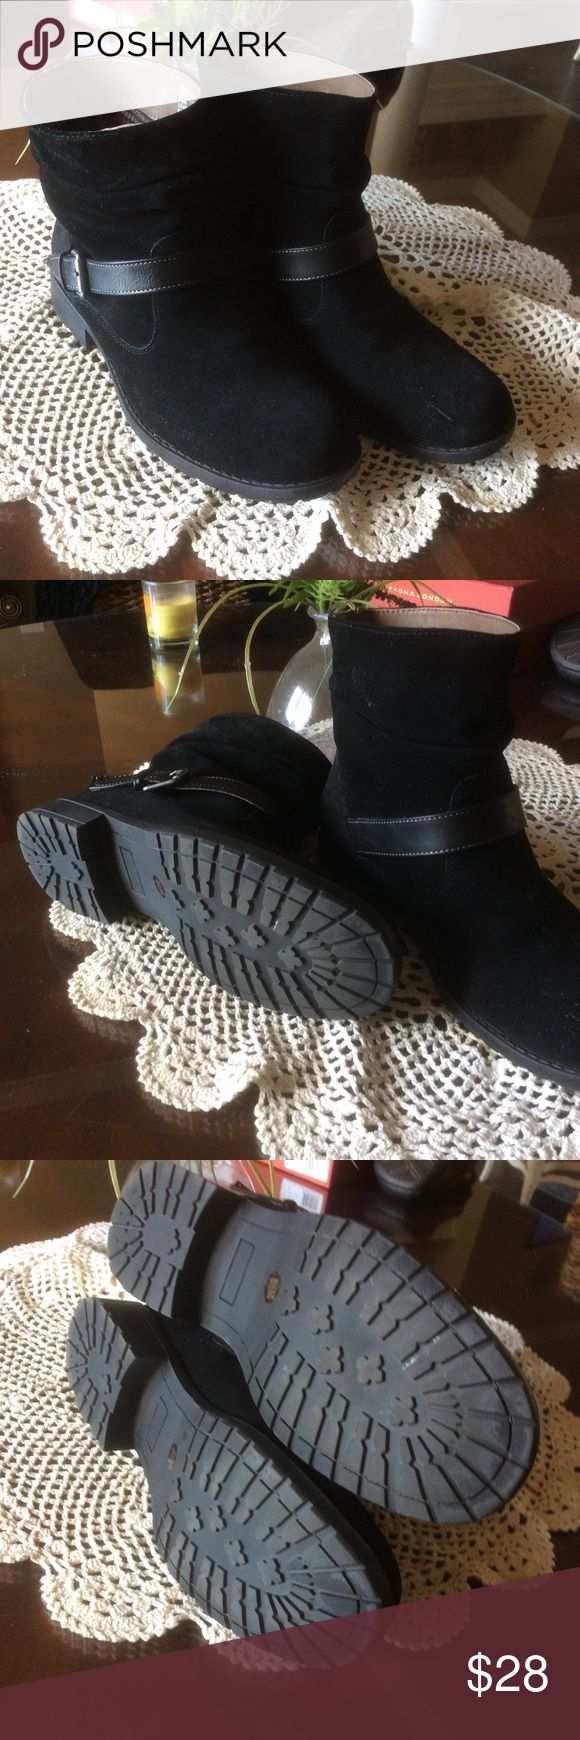 WHITE MOUNTAIN ANKLE BOOTS Black suede ankle boot with lots of style.  Only worn 1 time.  Like new. white mountain Shoes Ankle Boots & Booties